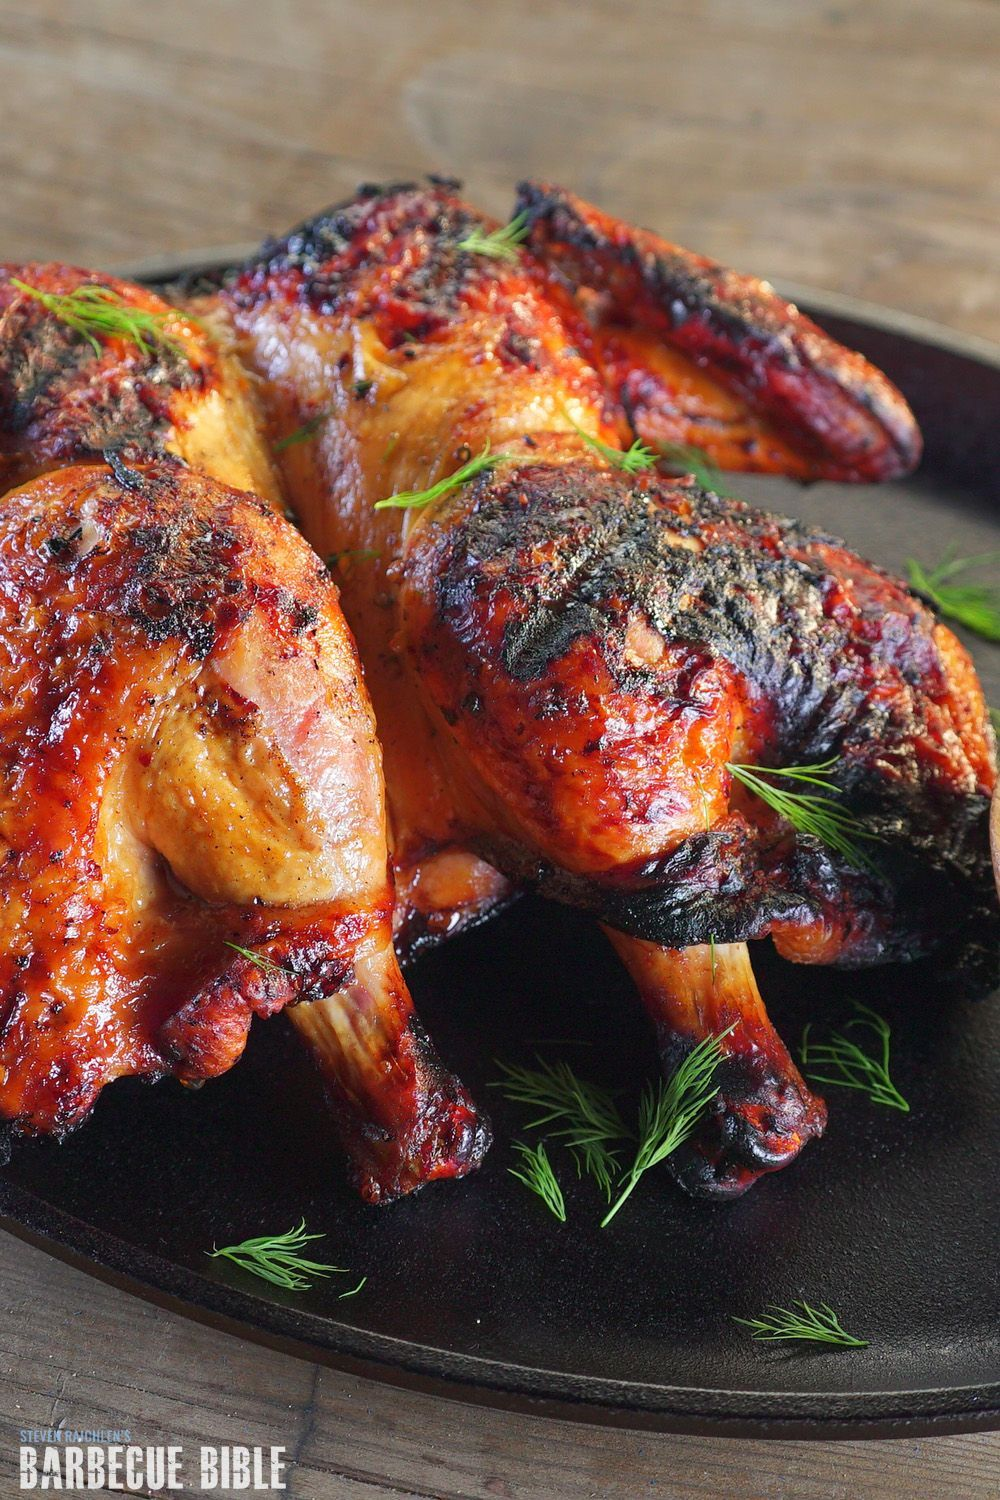 Salt Slab Grilled Georgian Tabaka Chicken Recipe Barbecuebible Com In 2020 Chicken Recipes Recipes Grilling Recipes